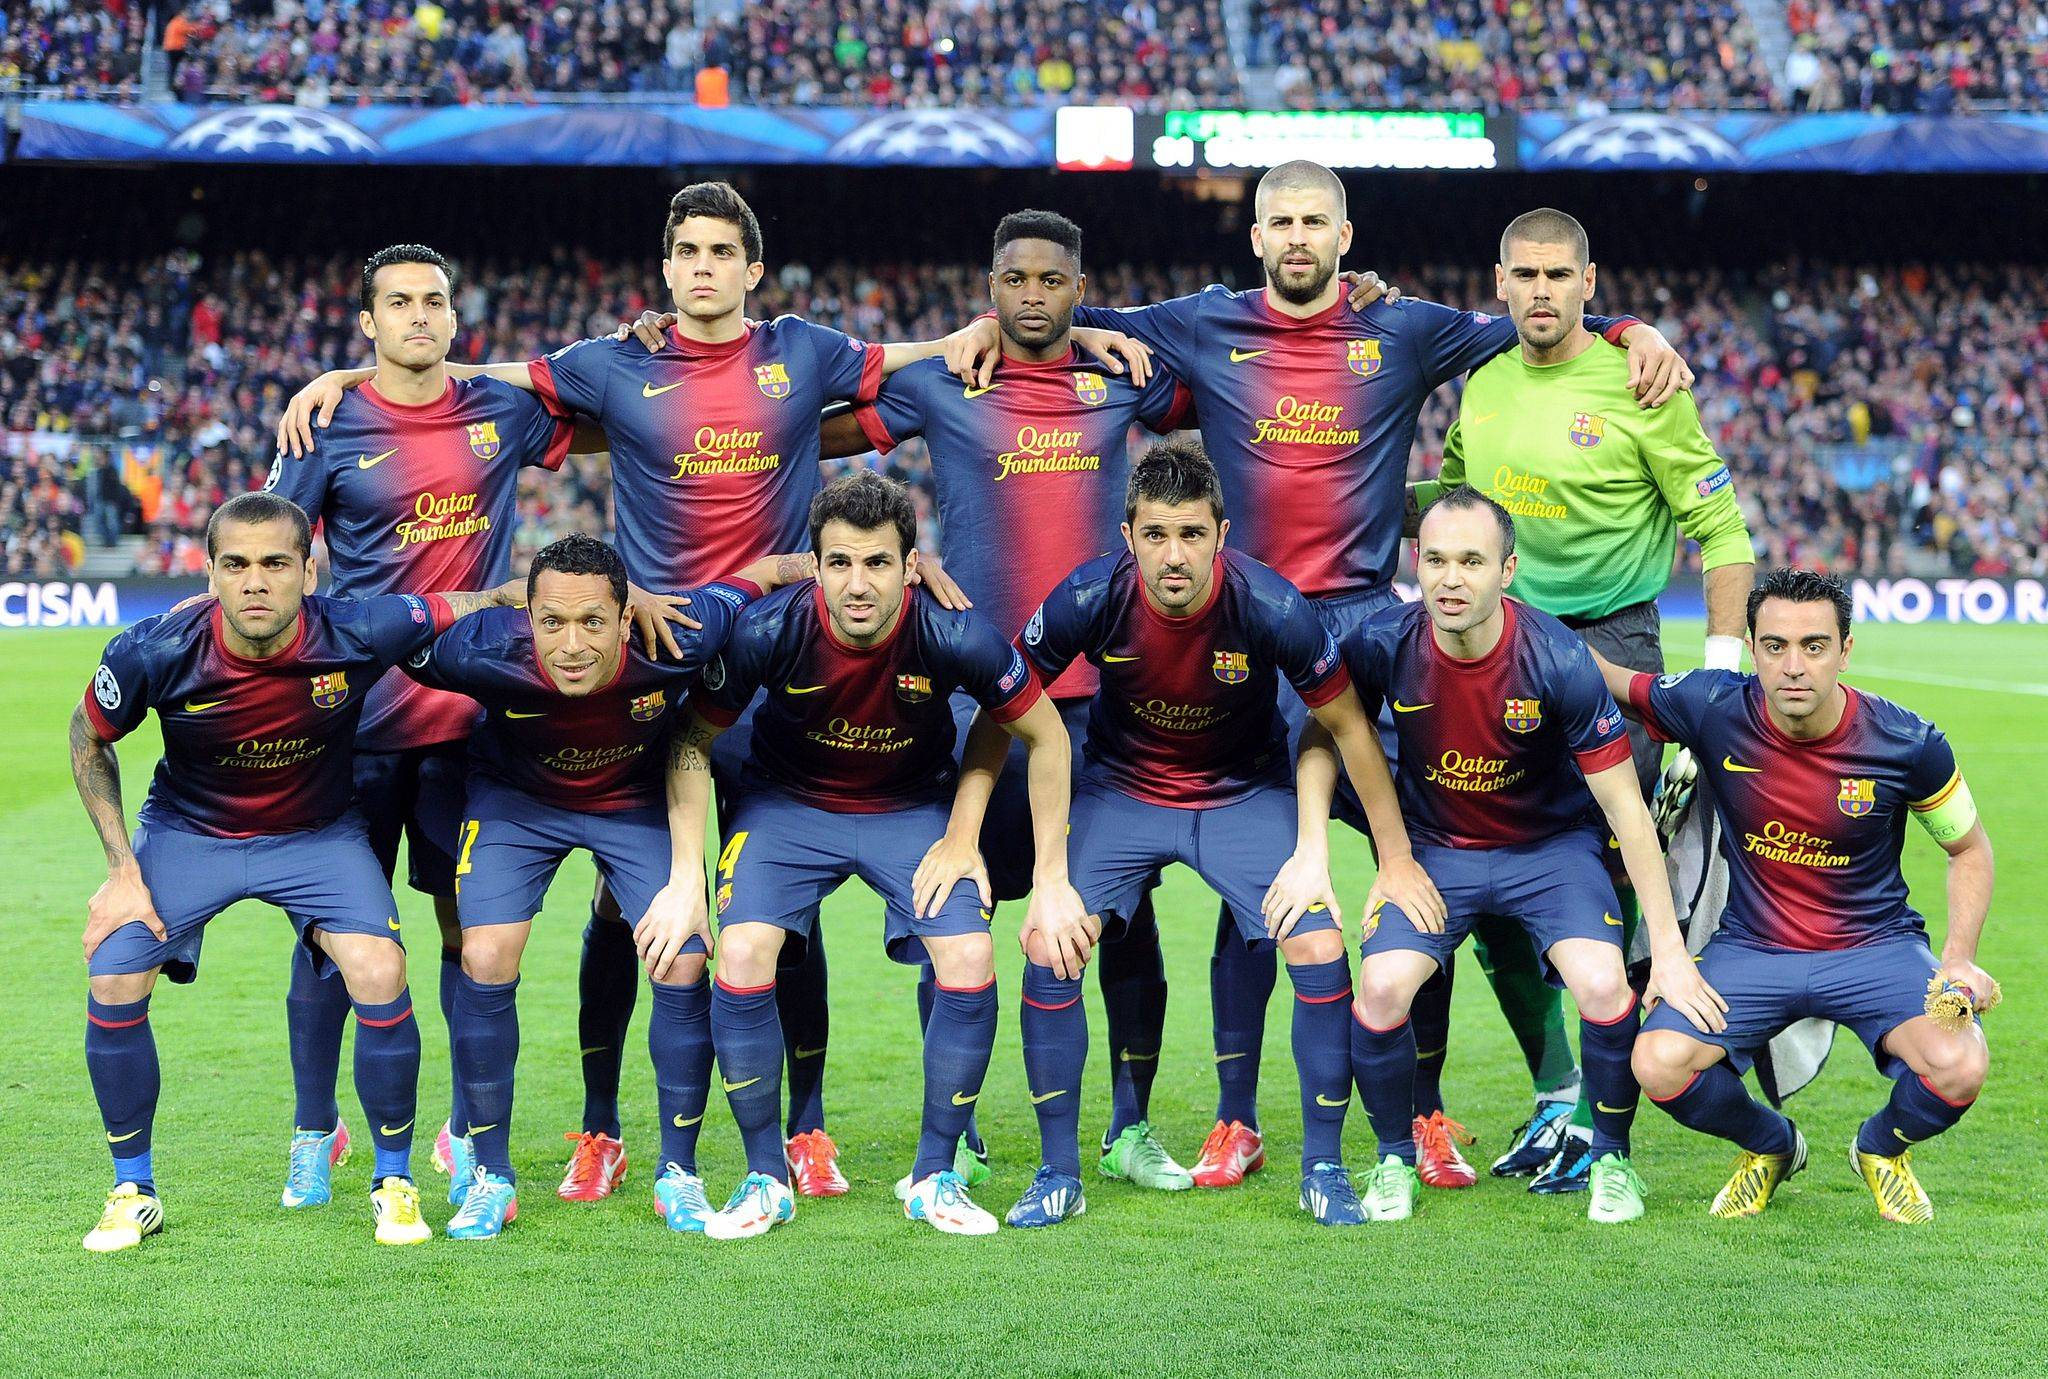 FC Barcelona Champions League Wallpaper